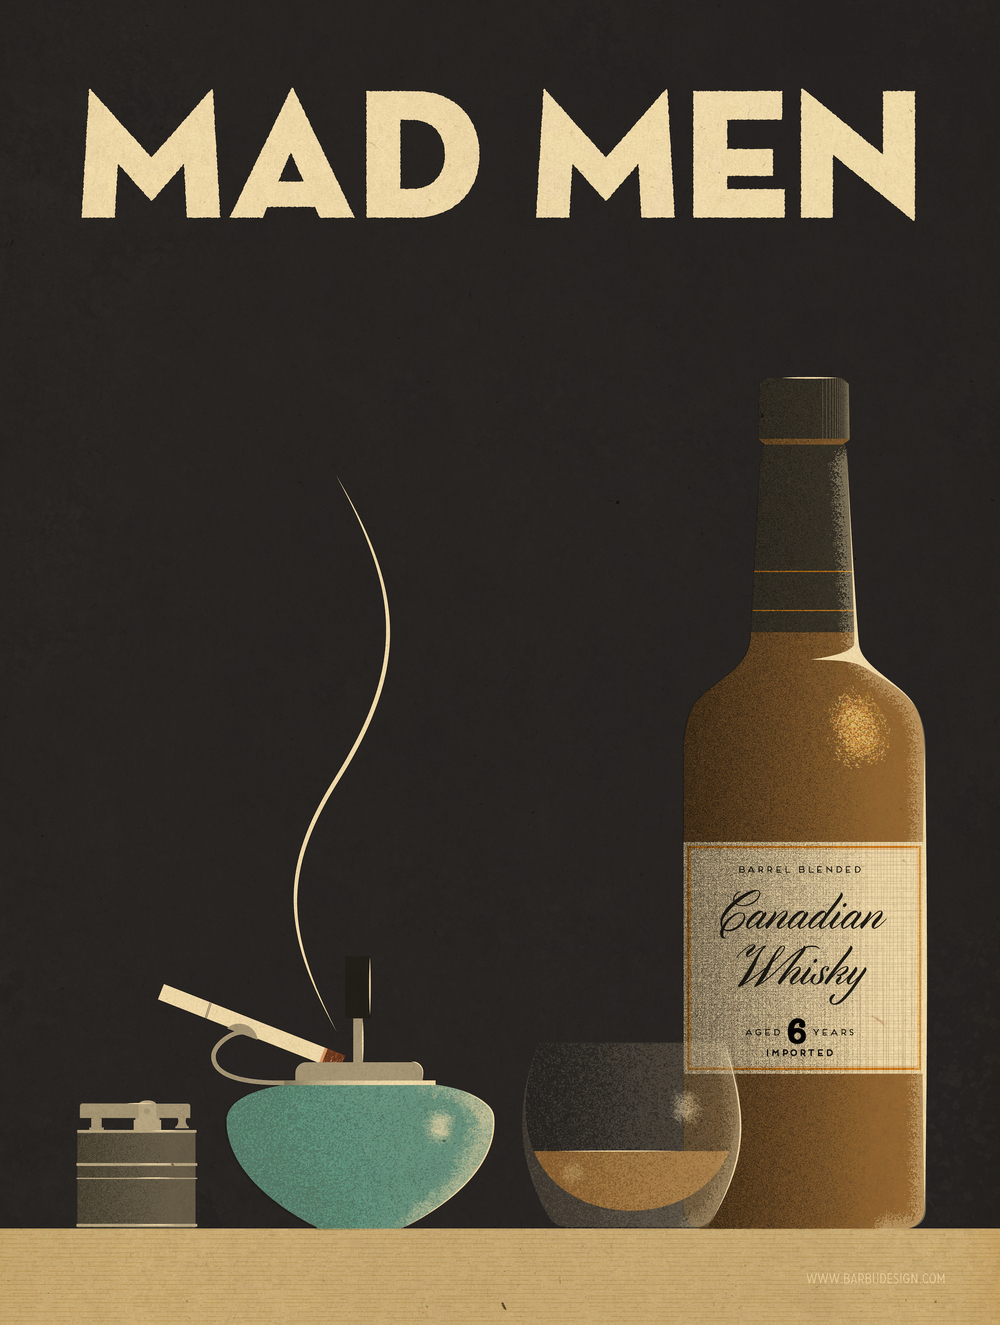 MAD MEN-01 - copie.jpg